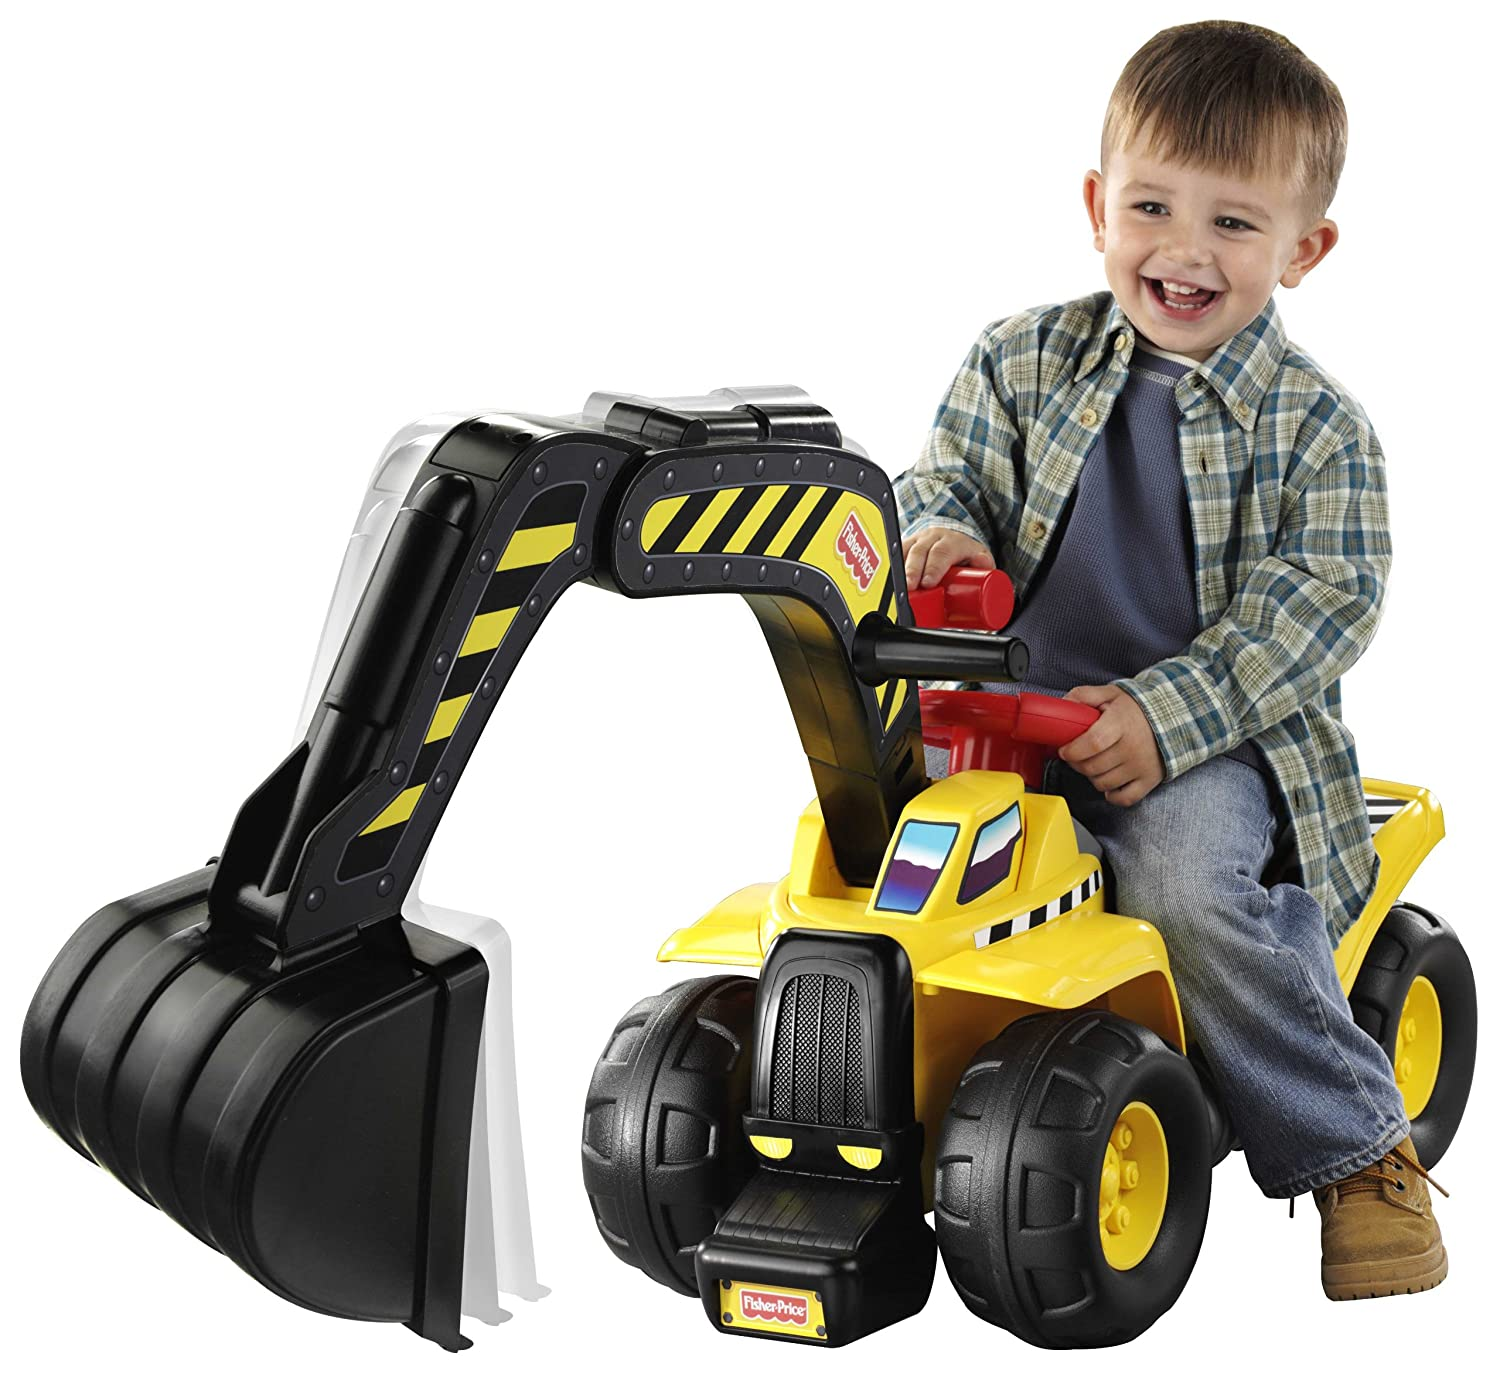 Fisher Price Big Action Digger Ride on Amazon Toys & Games